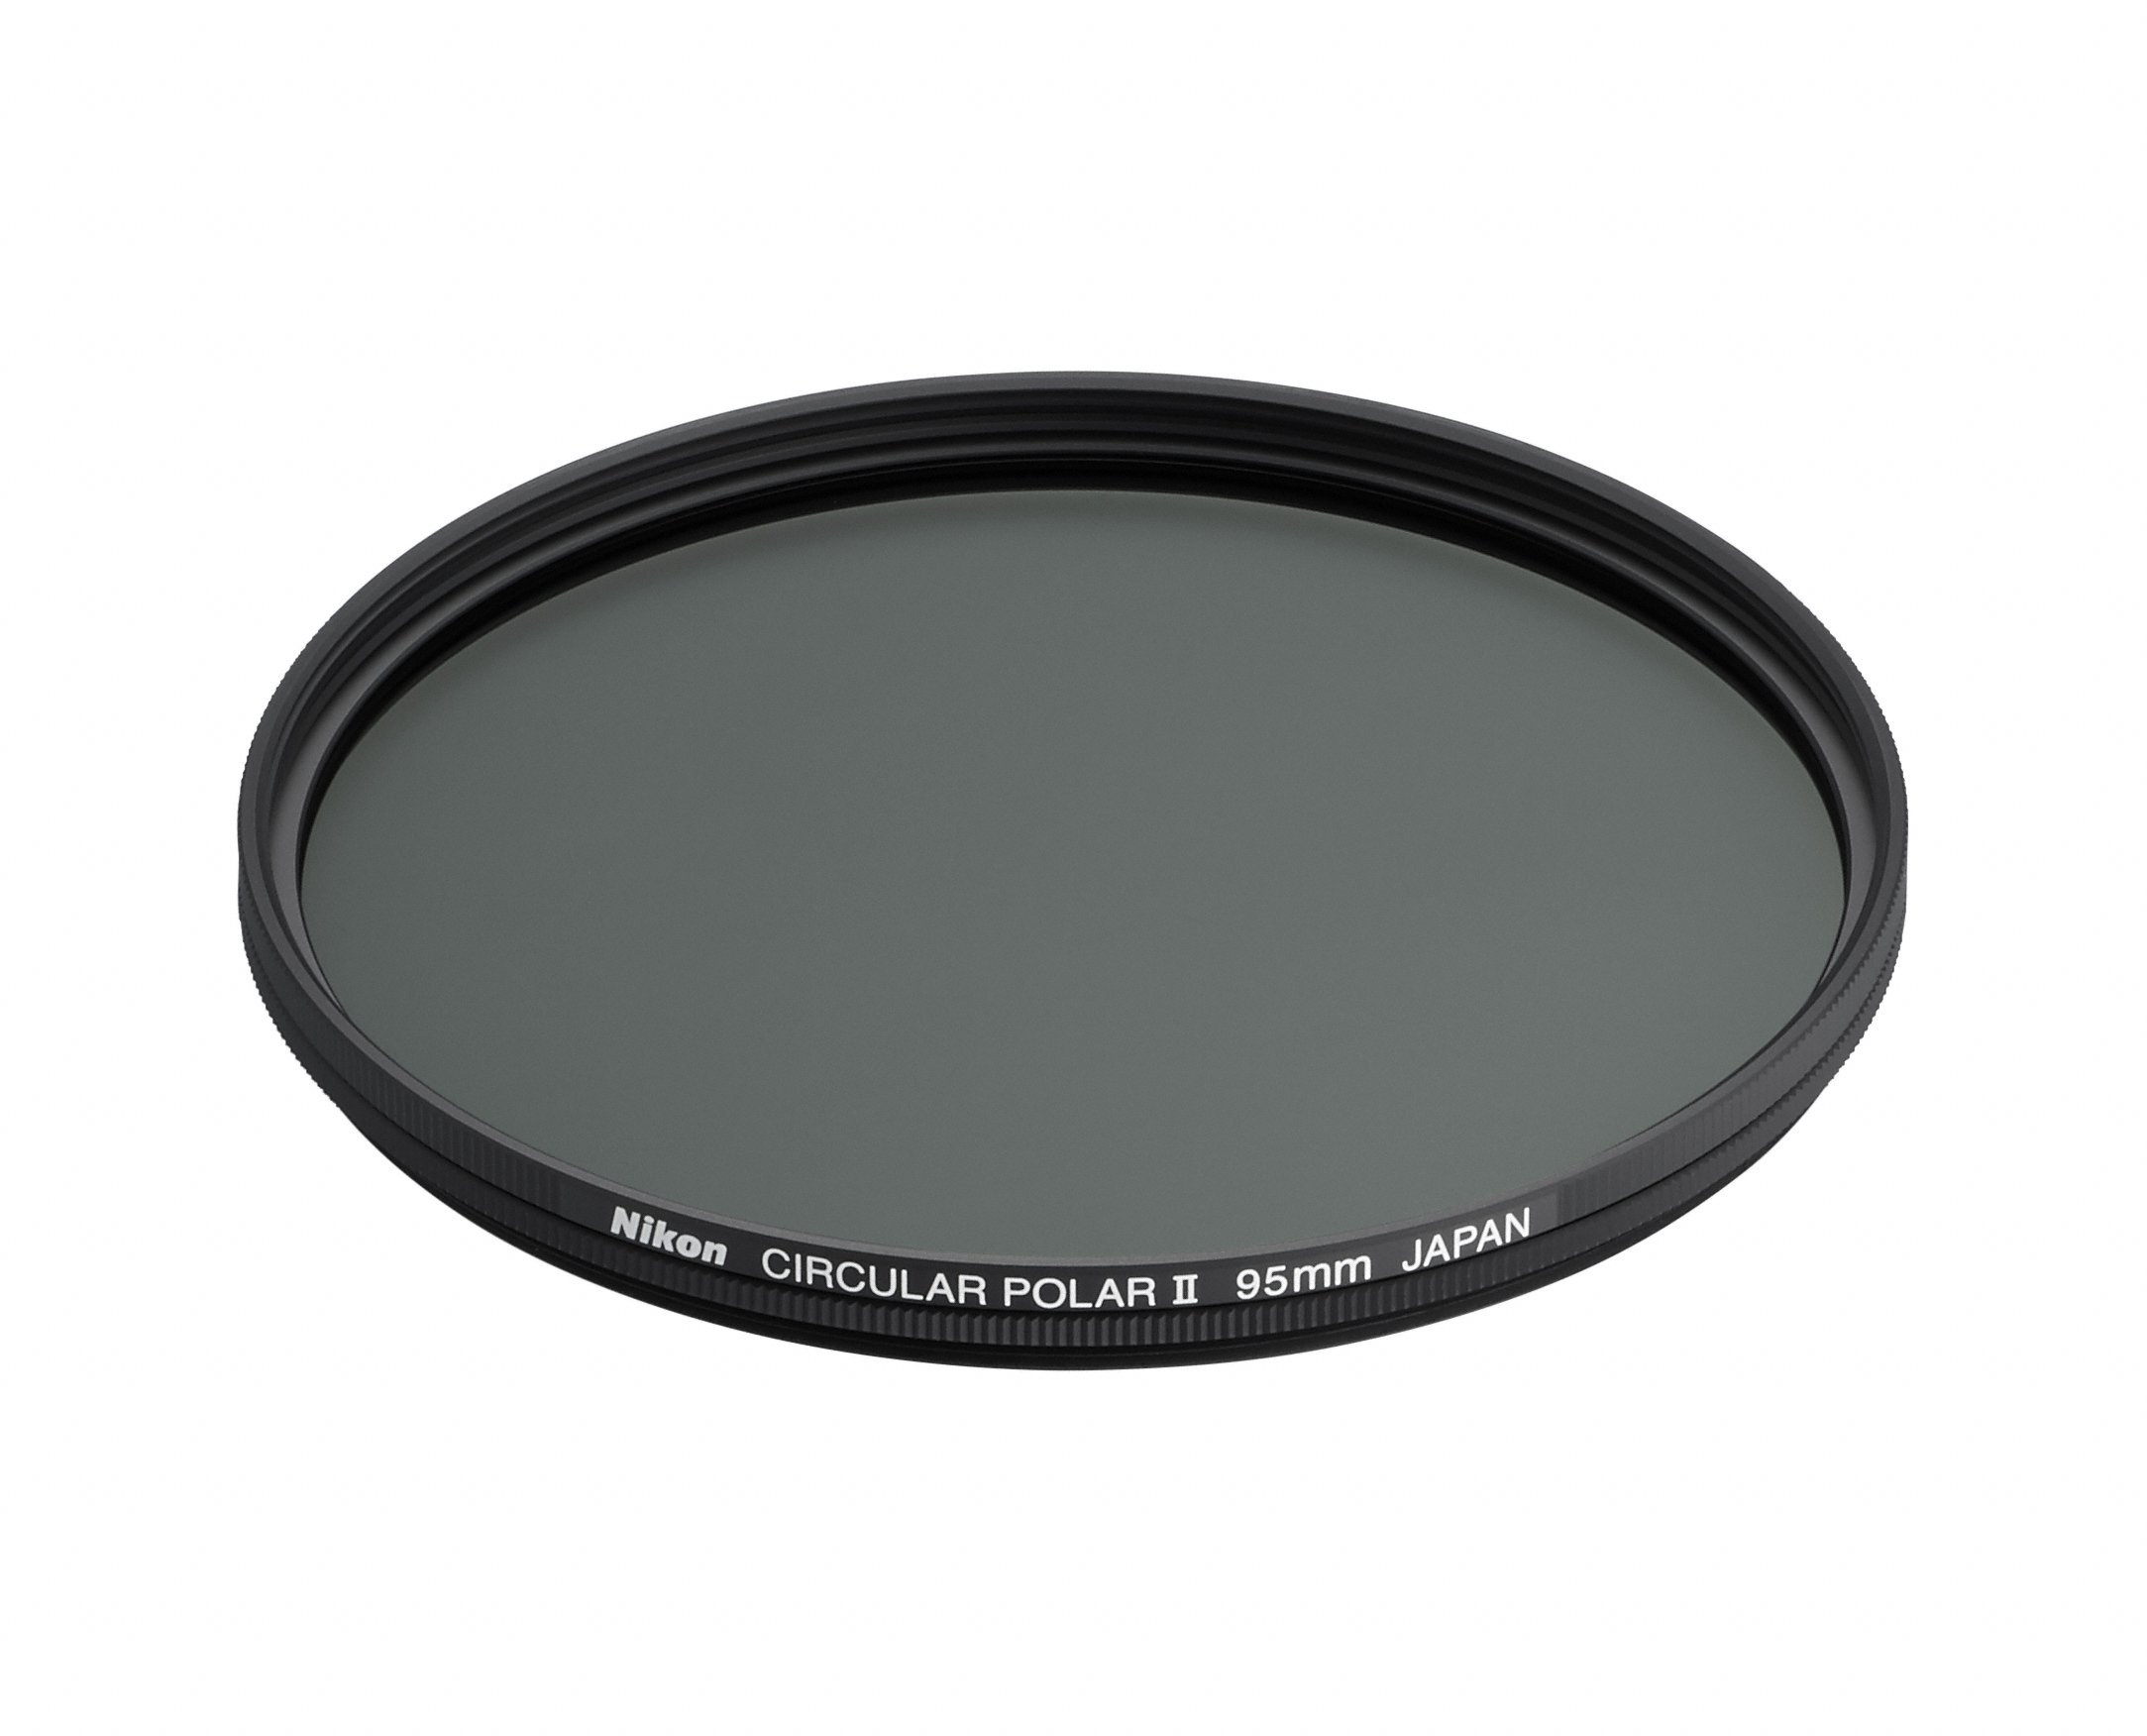 Nikon 95mm Circular Polarizing Filter II by Nikon